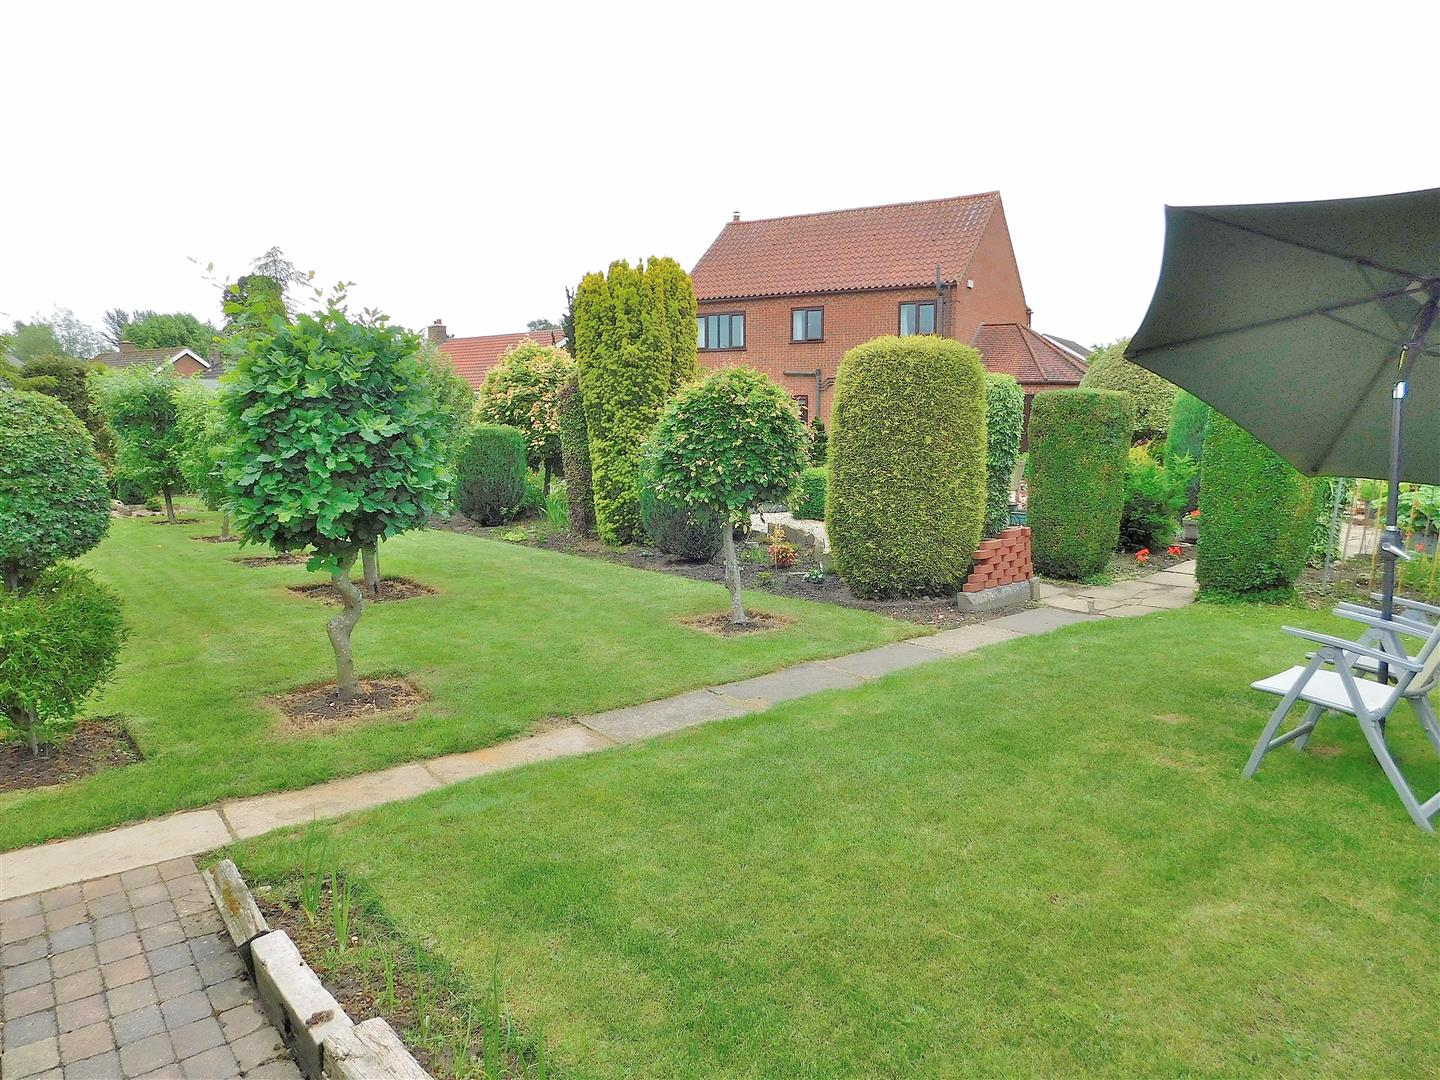 3 bed detached house for sale in Popes Lane, King's Lynn  - Property Image 2